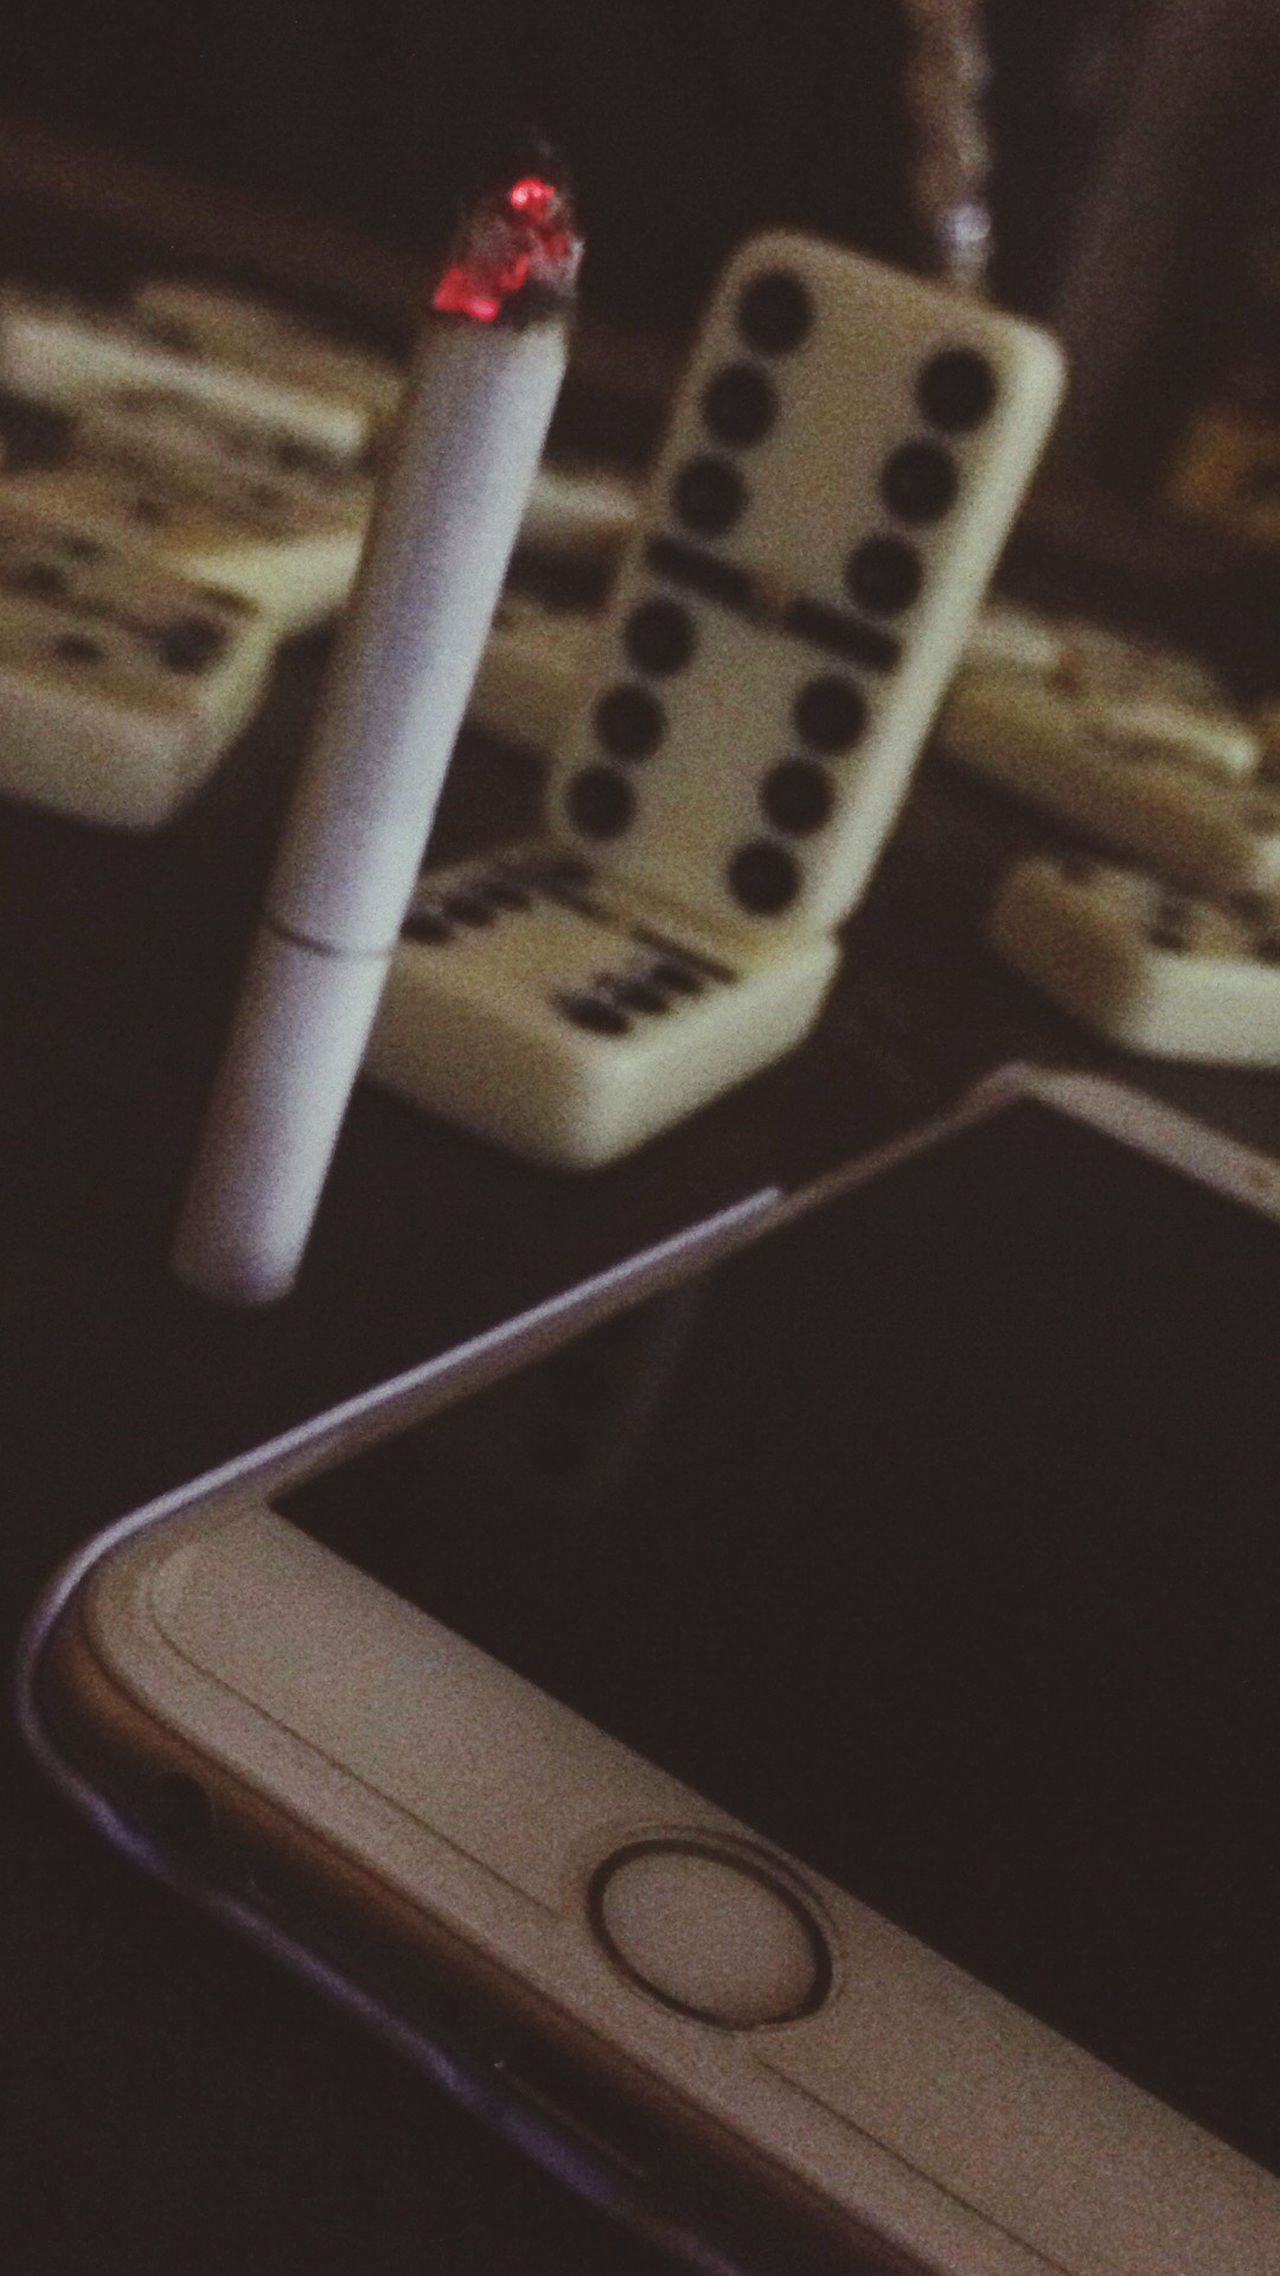 Cigarette Time Indoors  Music First Eyeem Photo No People Domino Iphone6s IPhoneography Break The Mold EyeEmNewHere